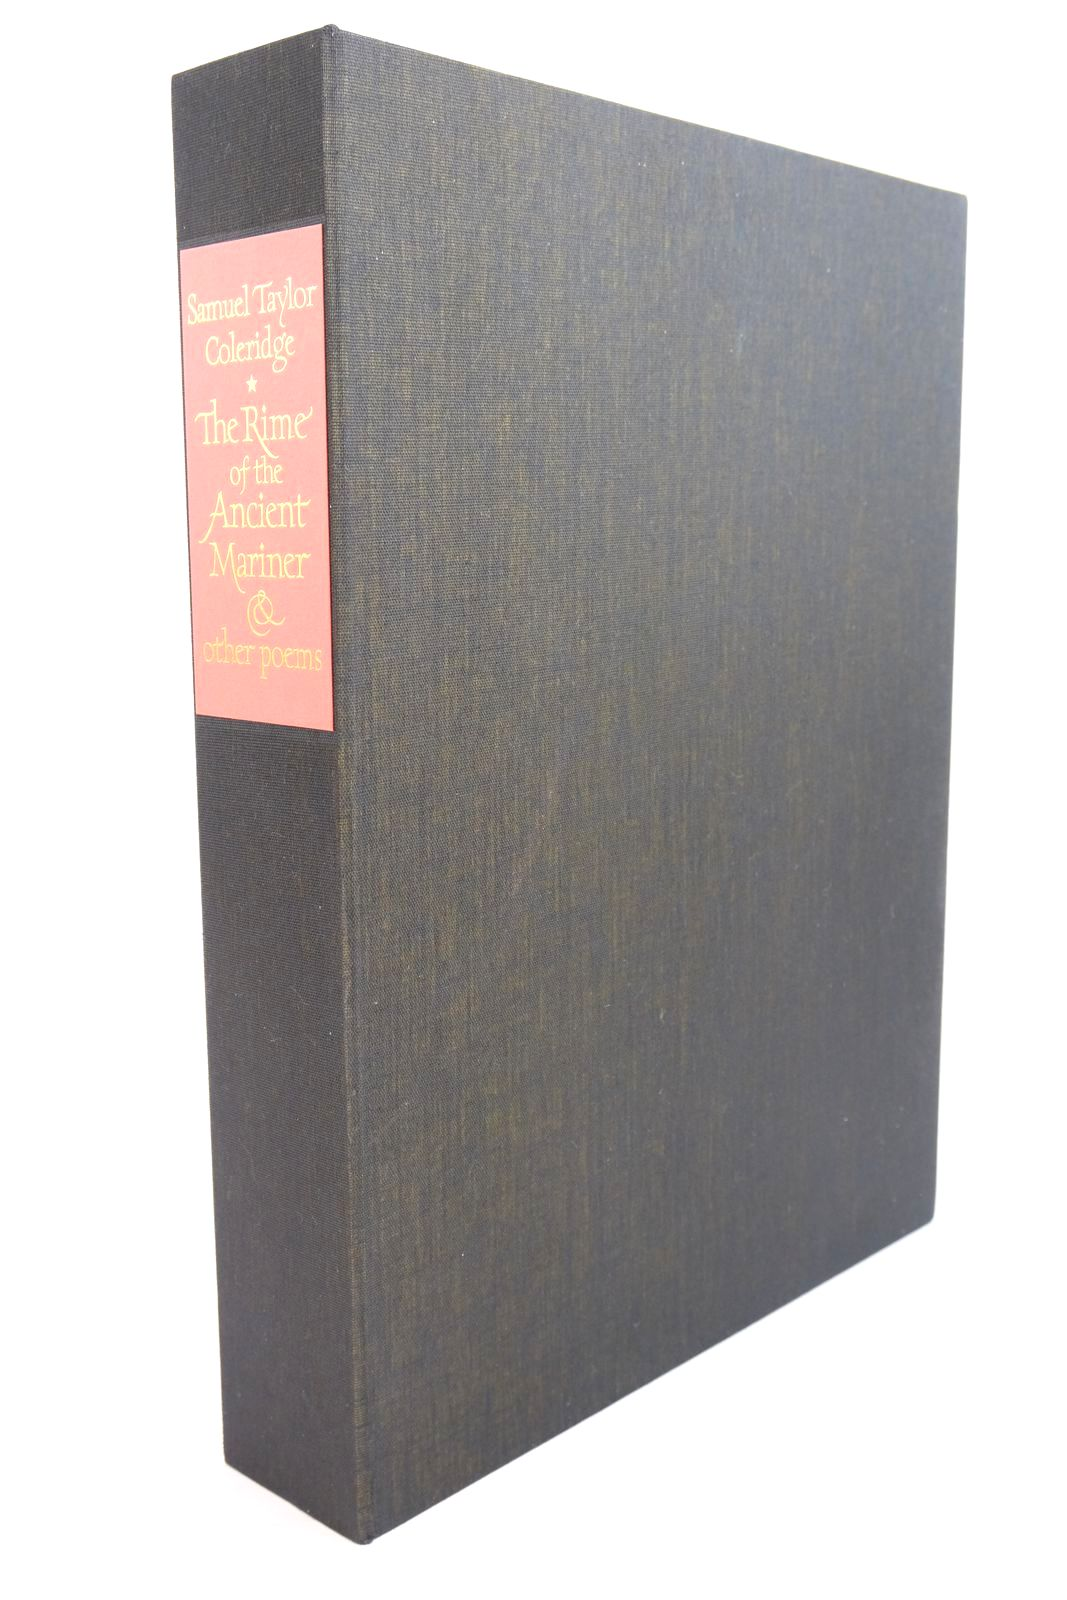 Photo of THE RIME OF THE ANCIENT MARINER AND THREE OTHER POEMS written by Coleridge, Samuel Taylor illustrated by Brockway, Harry published by Folio Society (STOCK CODE: 1320970)  for sale by Stella & Rose's Books